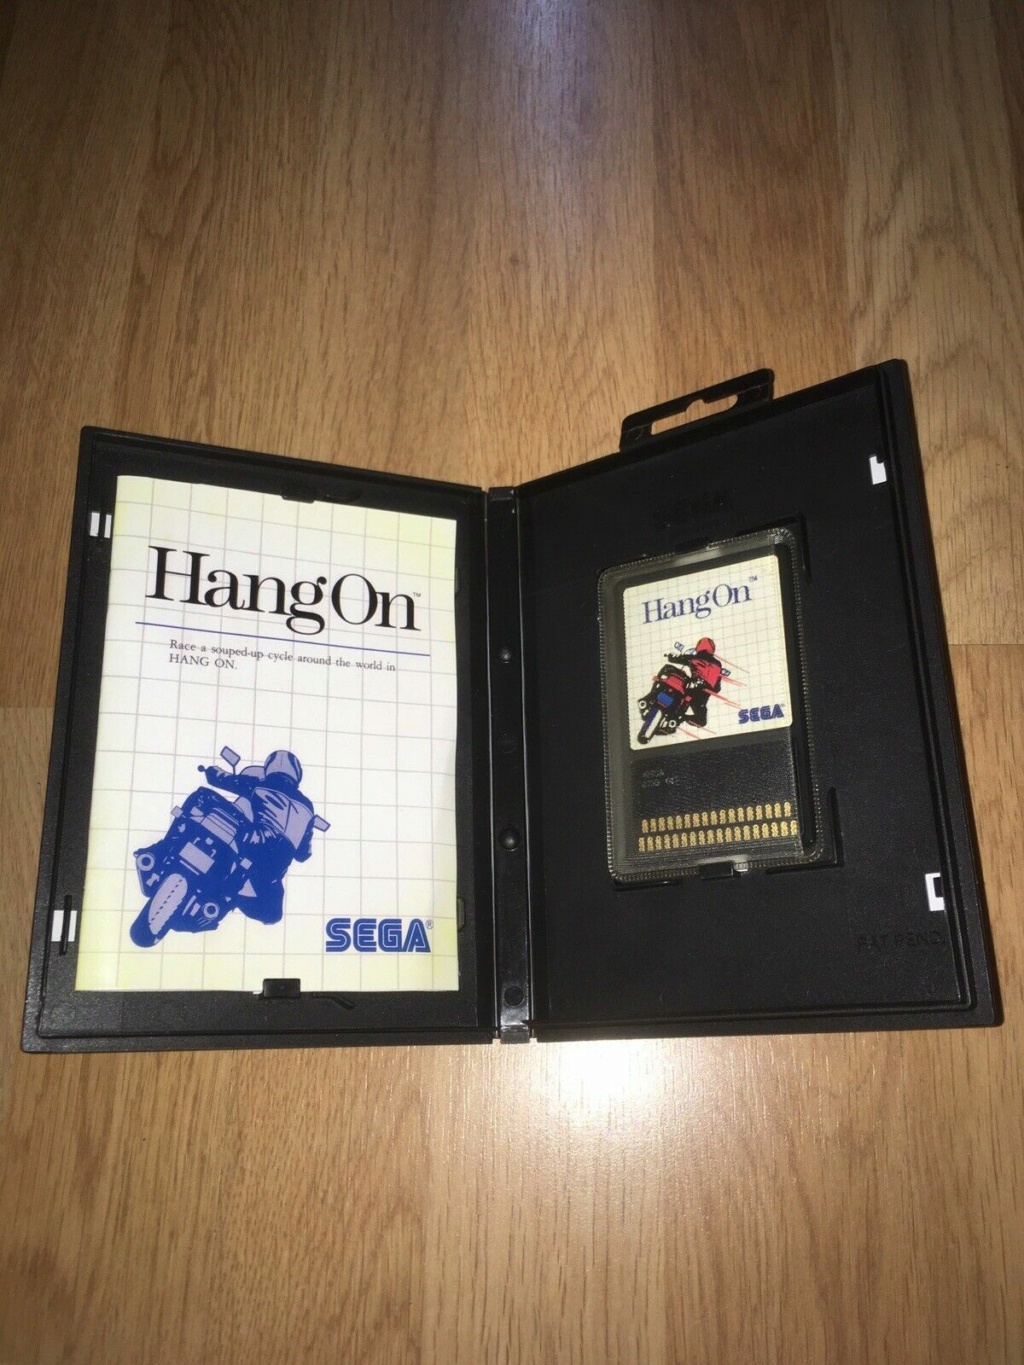 [VDS] HANG-ON The Sega Card Master System complet en boîte et notice 02hang10